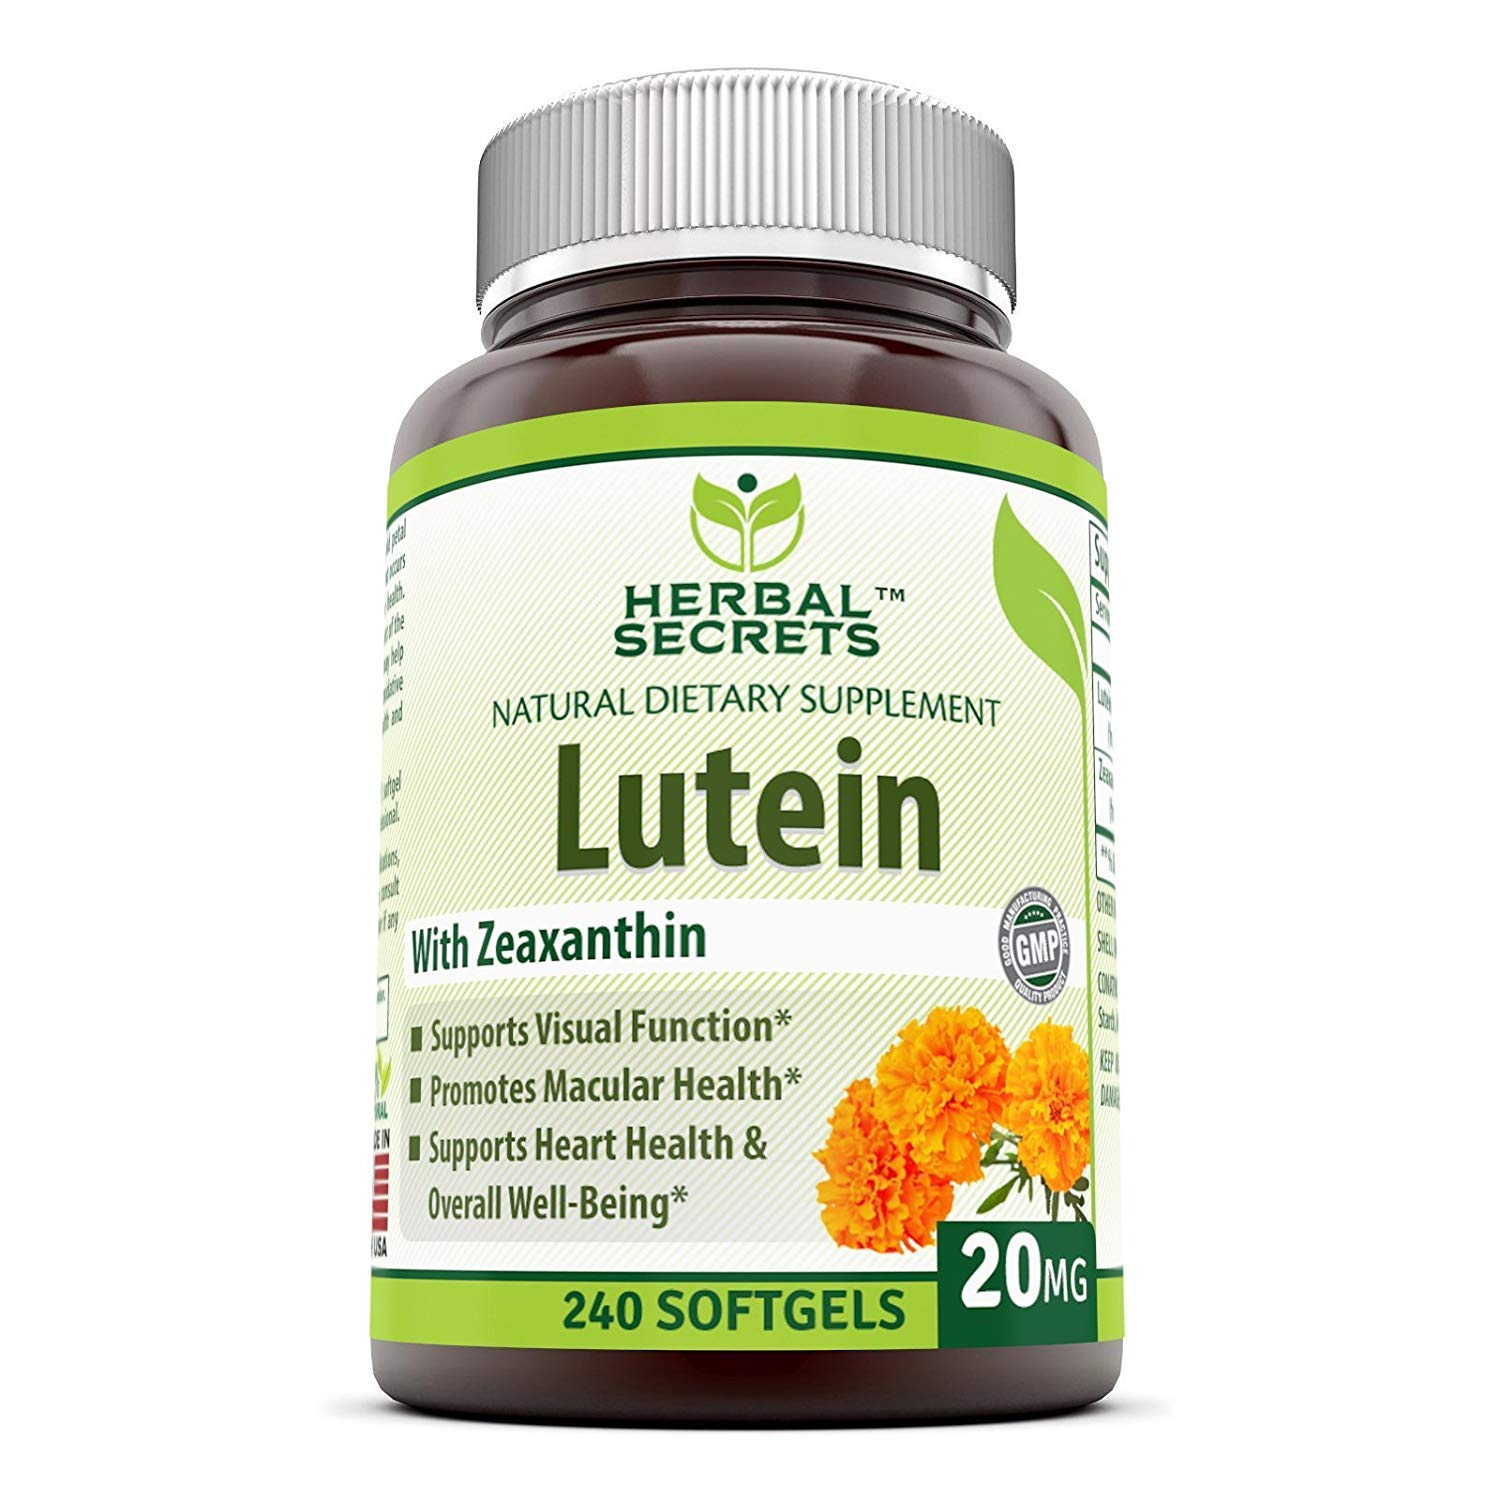 Herbal Secrets Lutein with Zeaxanthin 20 Mg 240 Softgels (Non-GMO) - Supports Heart Health and Well Being* Support Visual Function* Promotes Macular Health* by Herbal Secrets